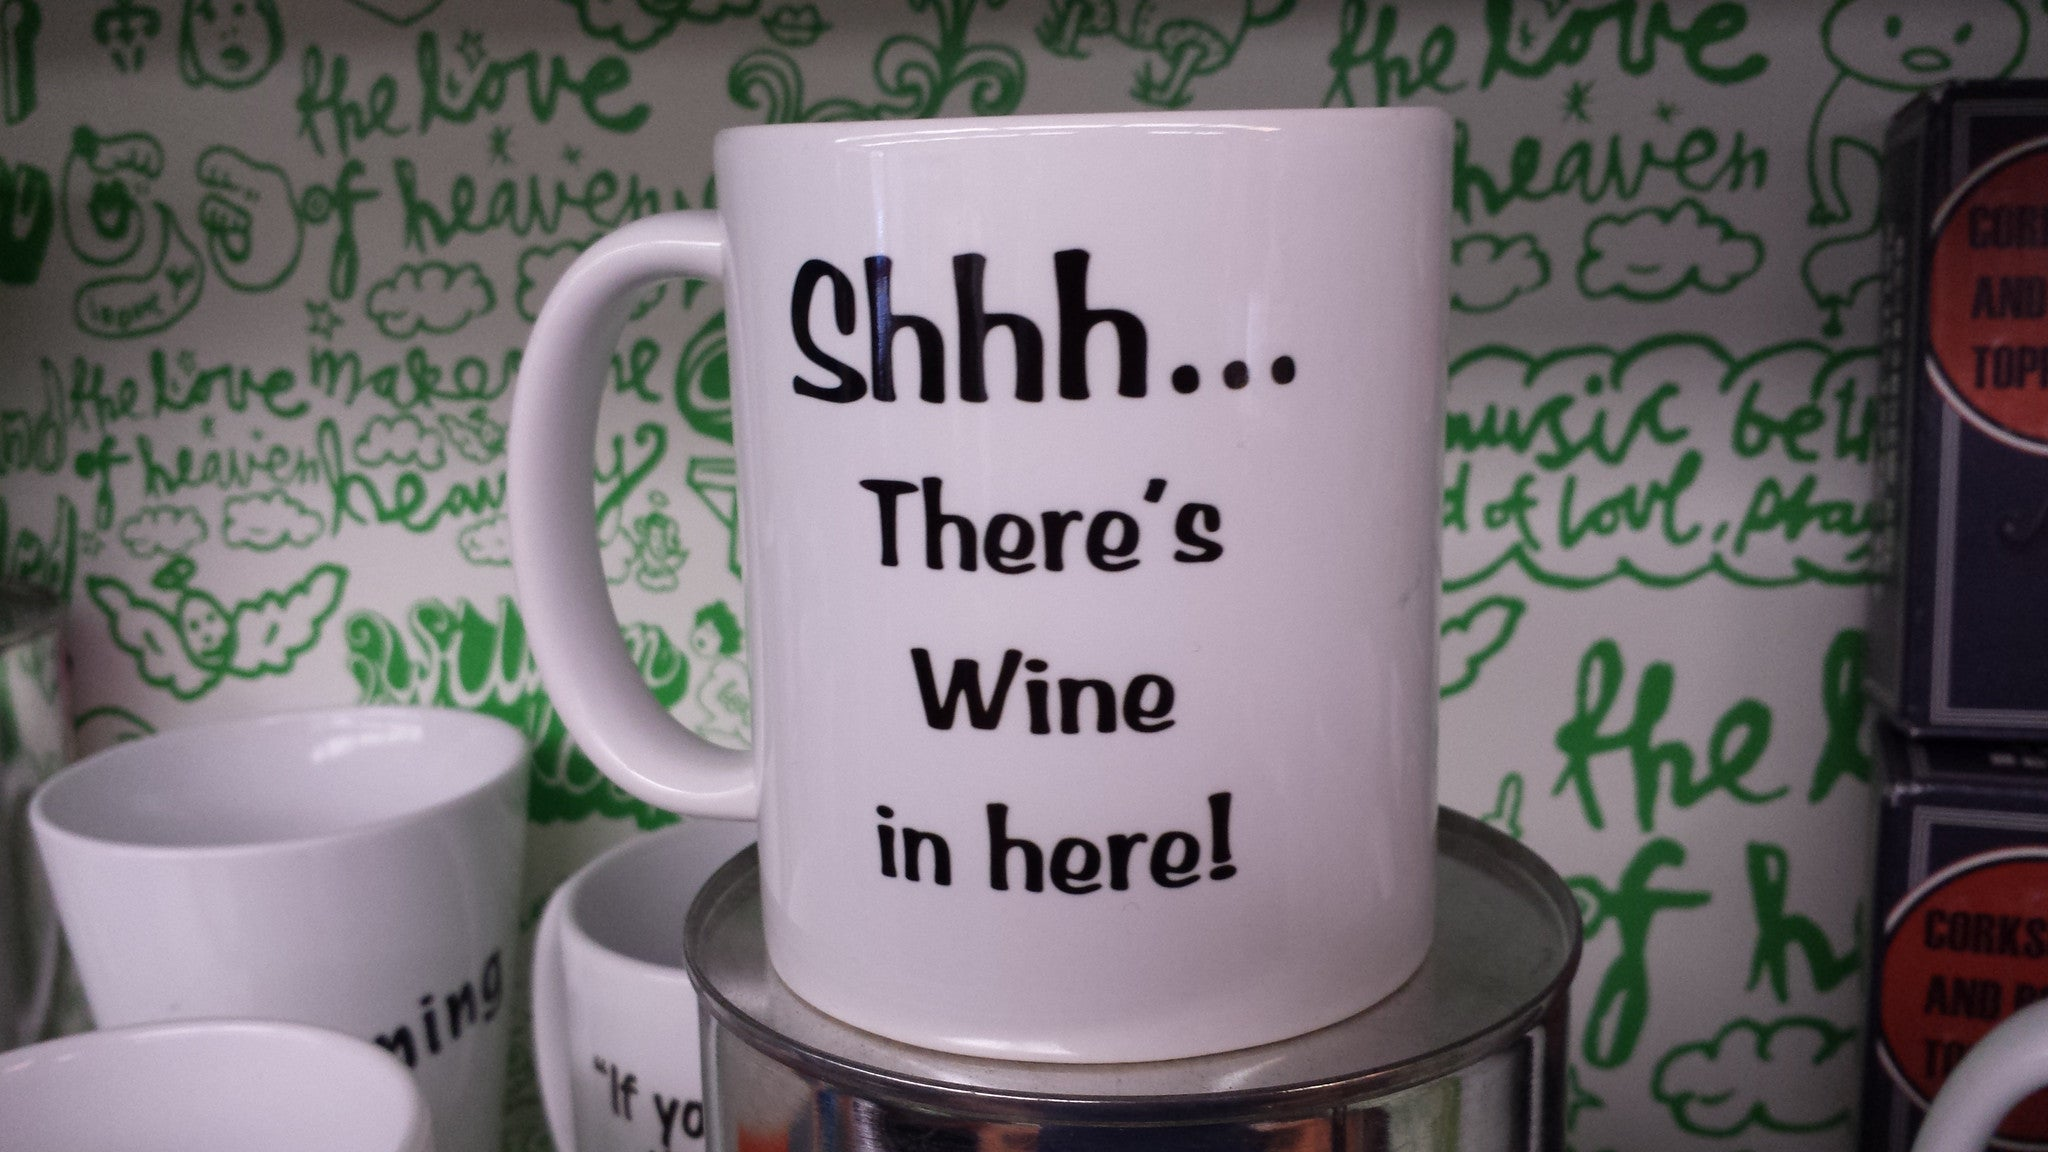 Shhh...there's wine in here! coffee mug